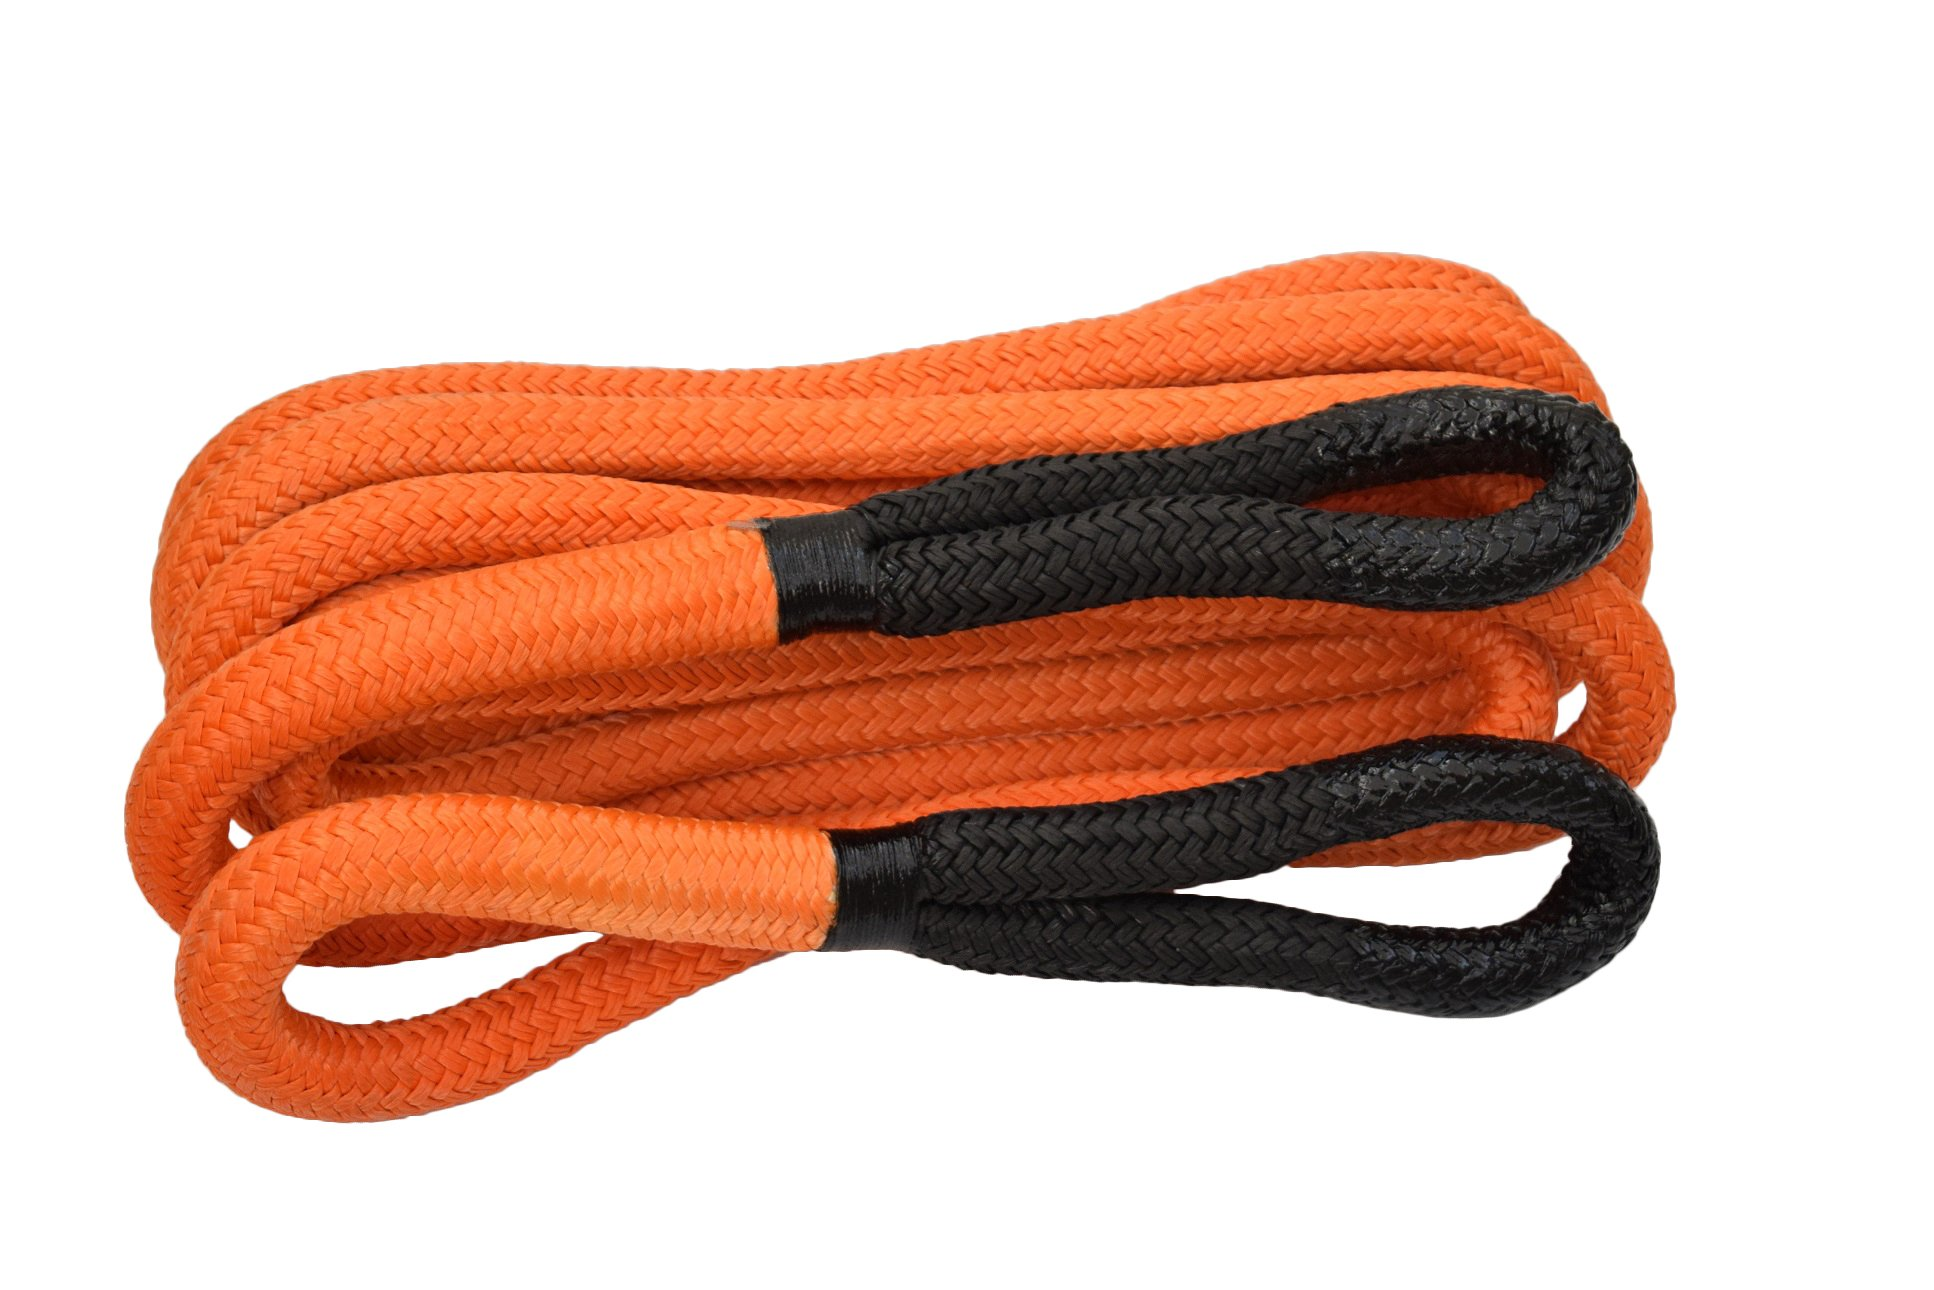 1''×30ft Kinetic Energy Rope Truck SUV Tow Rope,Recovery Rope 30000lbs,Towing Rope (Orange) by QIQU